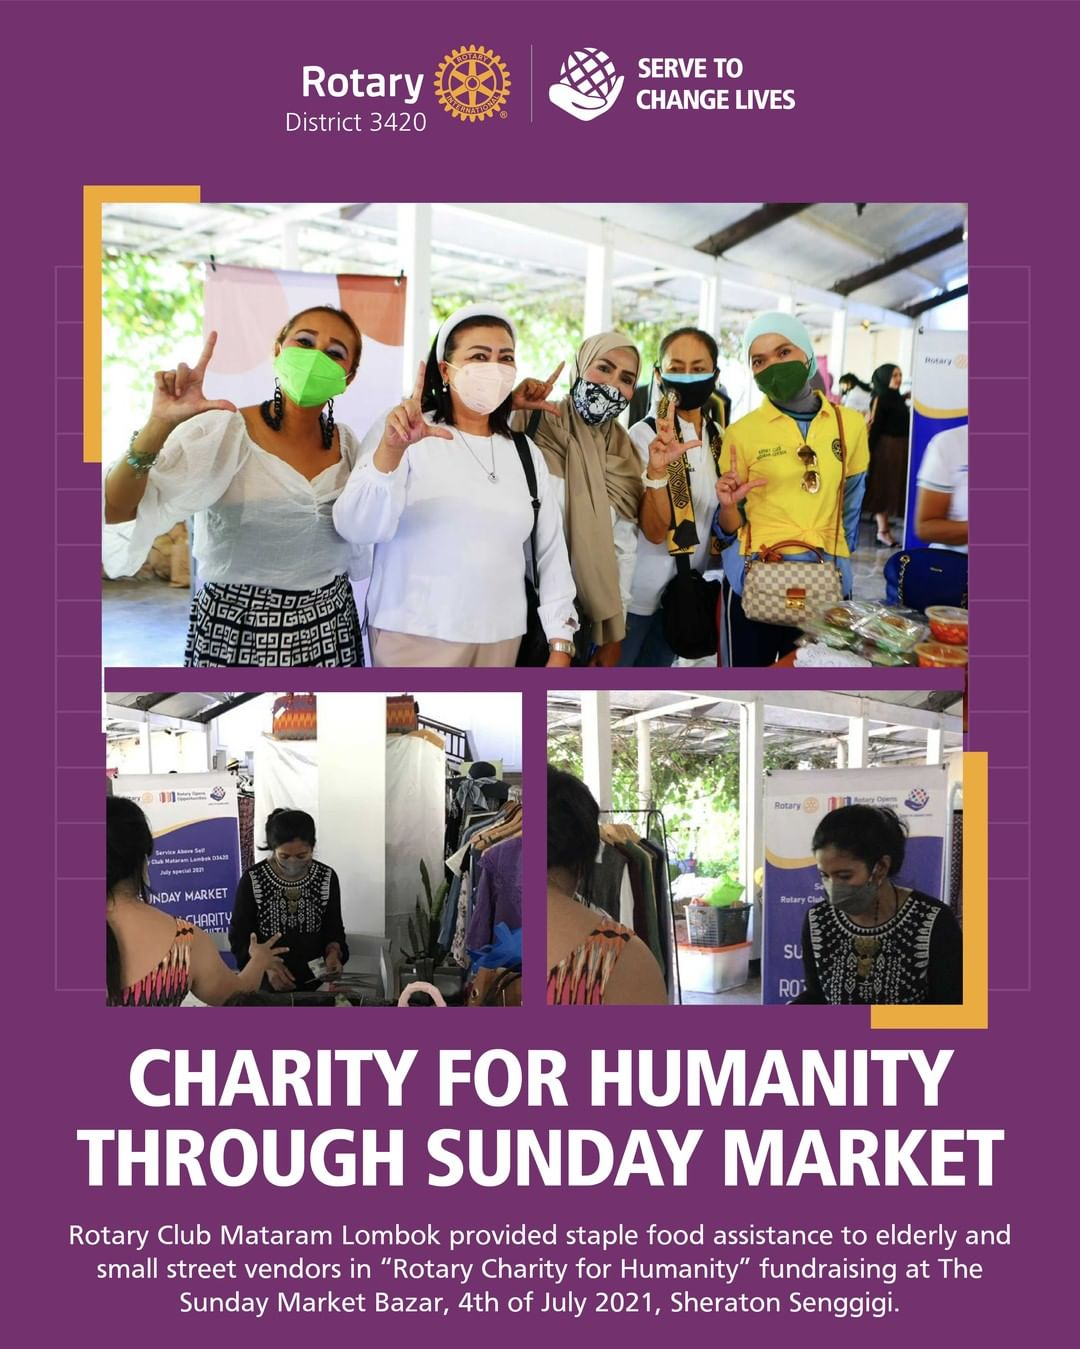 Charity for Humanity Through Sunday Market